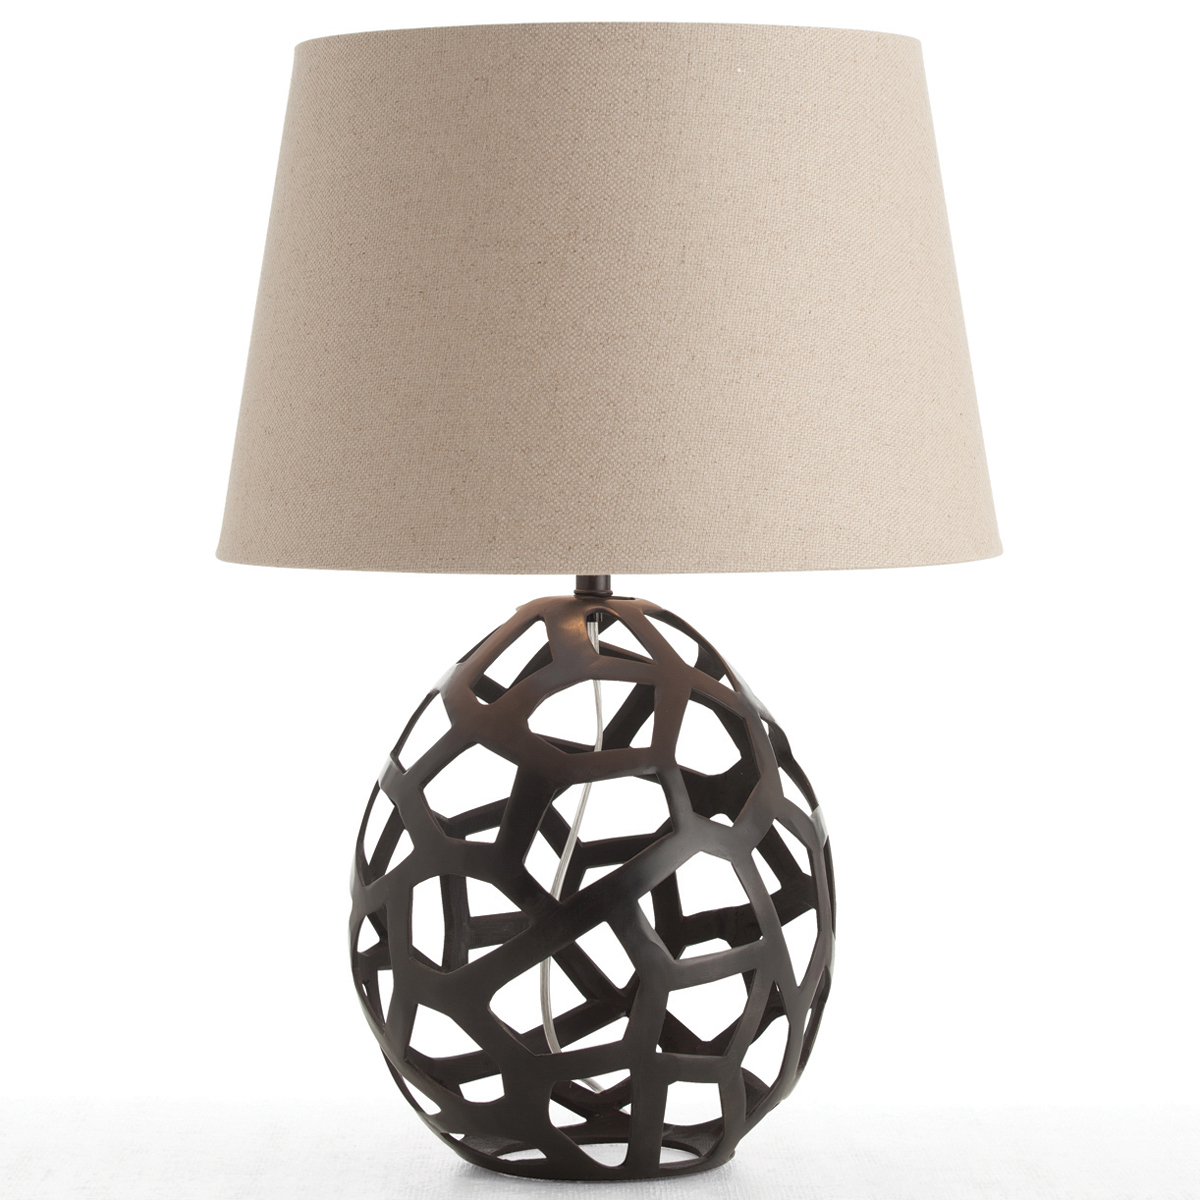 awesome table lamp with white shade and decorative body in brown by Arteriors Lighting for home furniture ideas